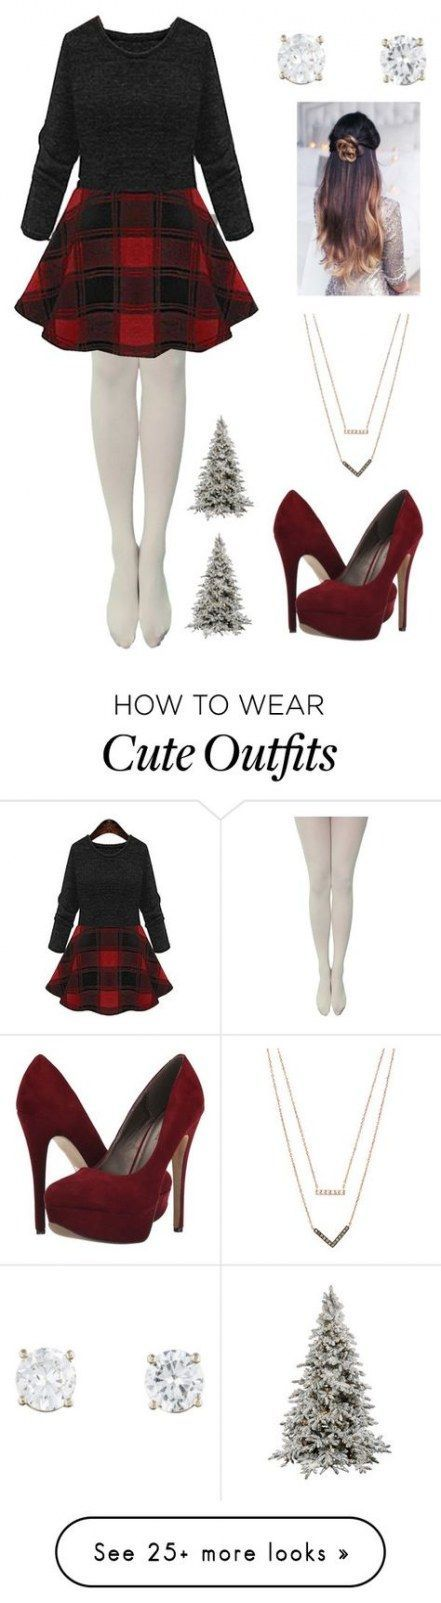 Party Christmas Outfit Teen Fashion 67+ Ideas